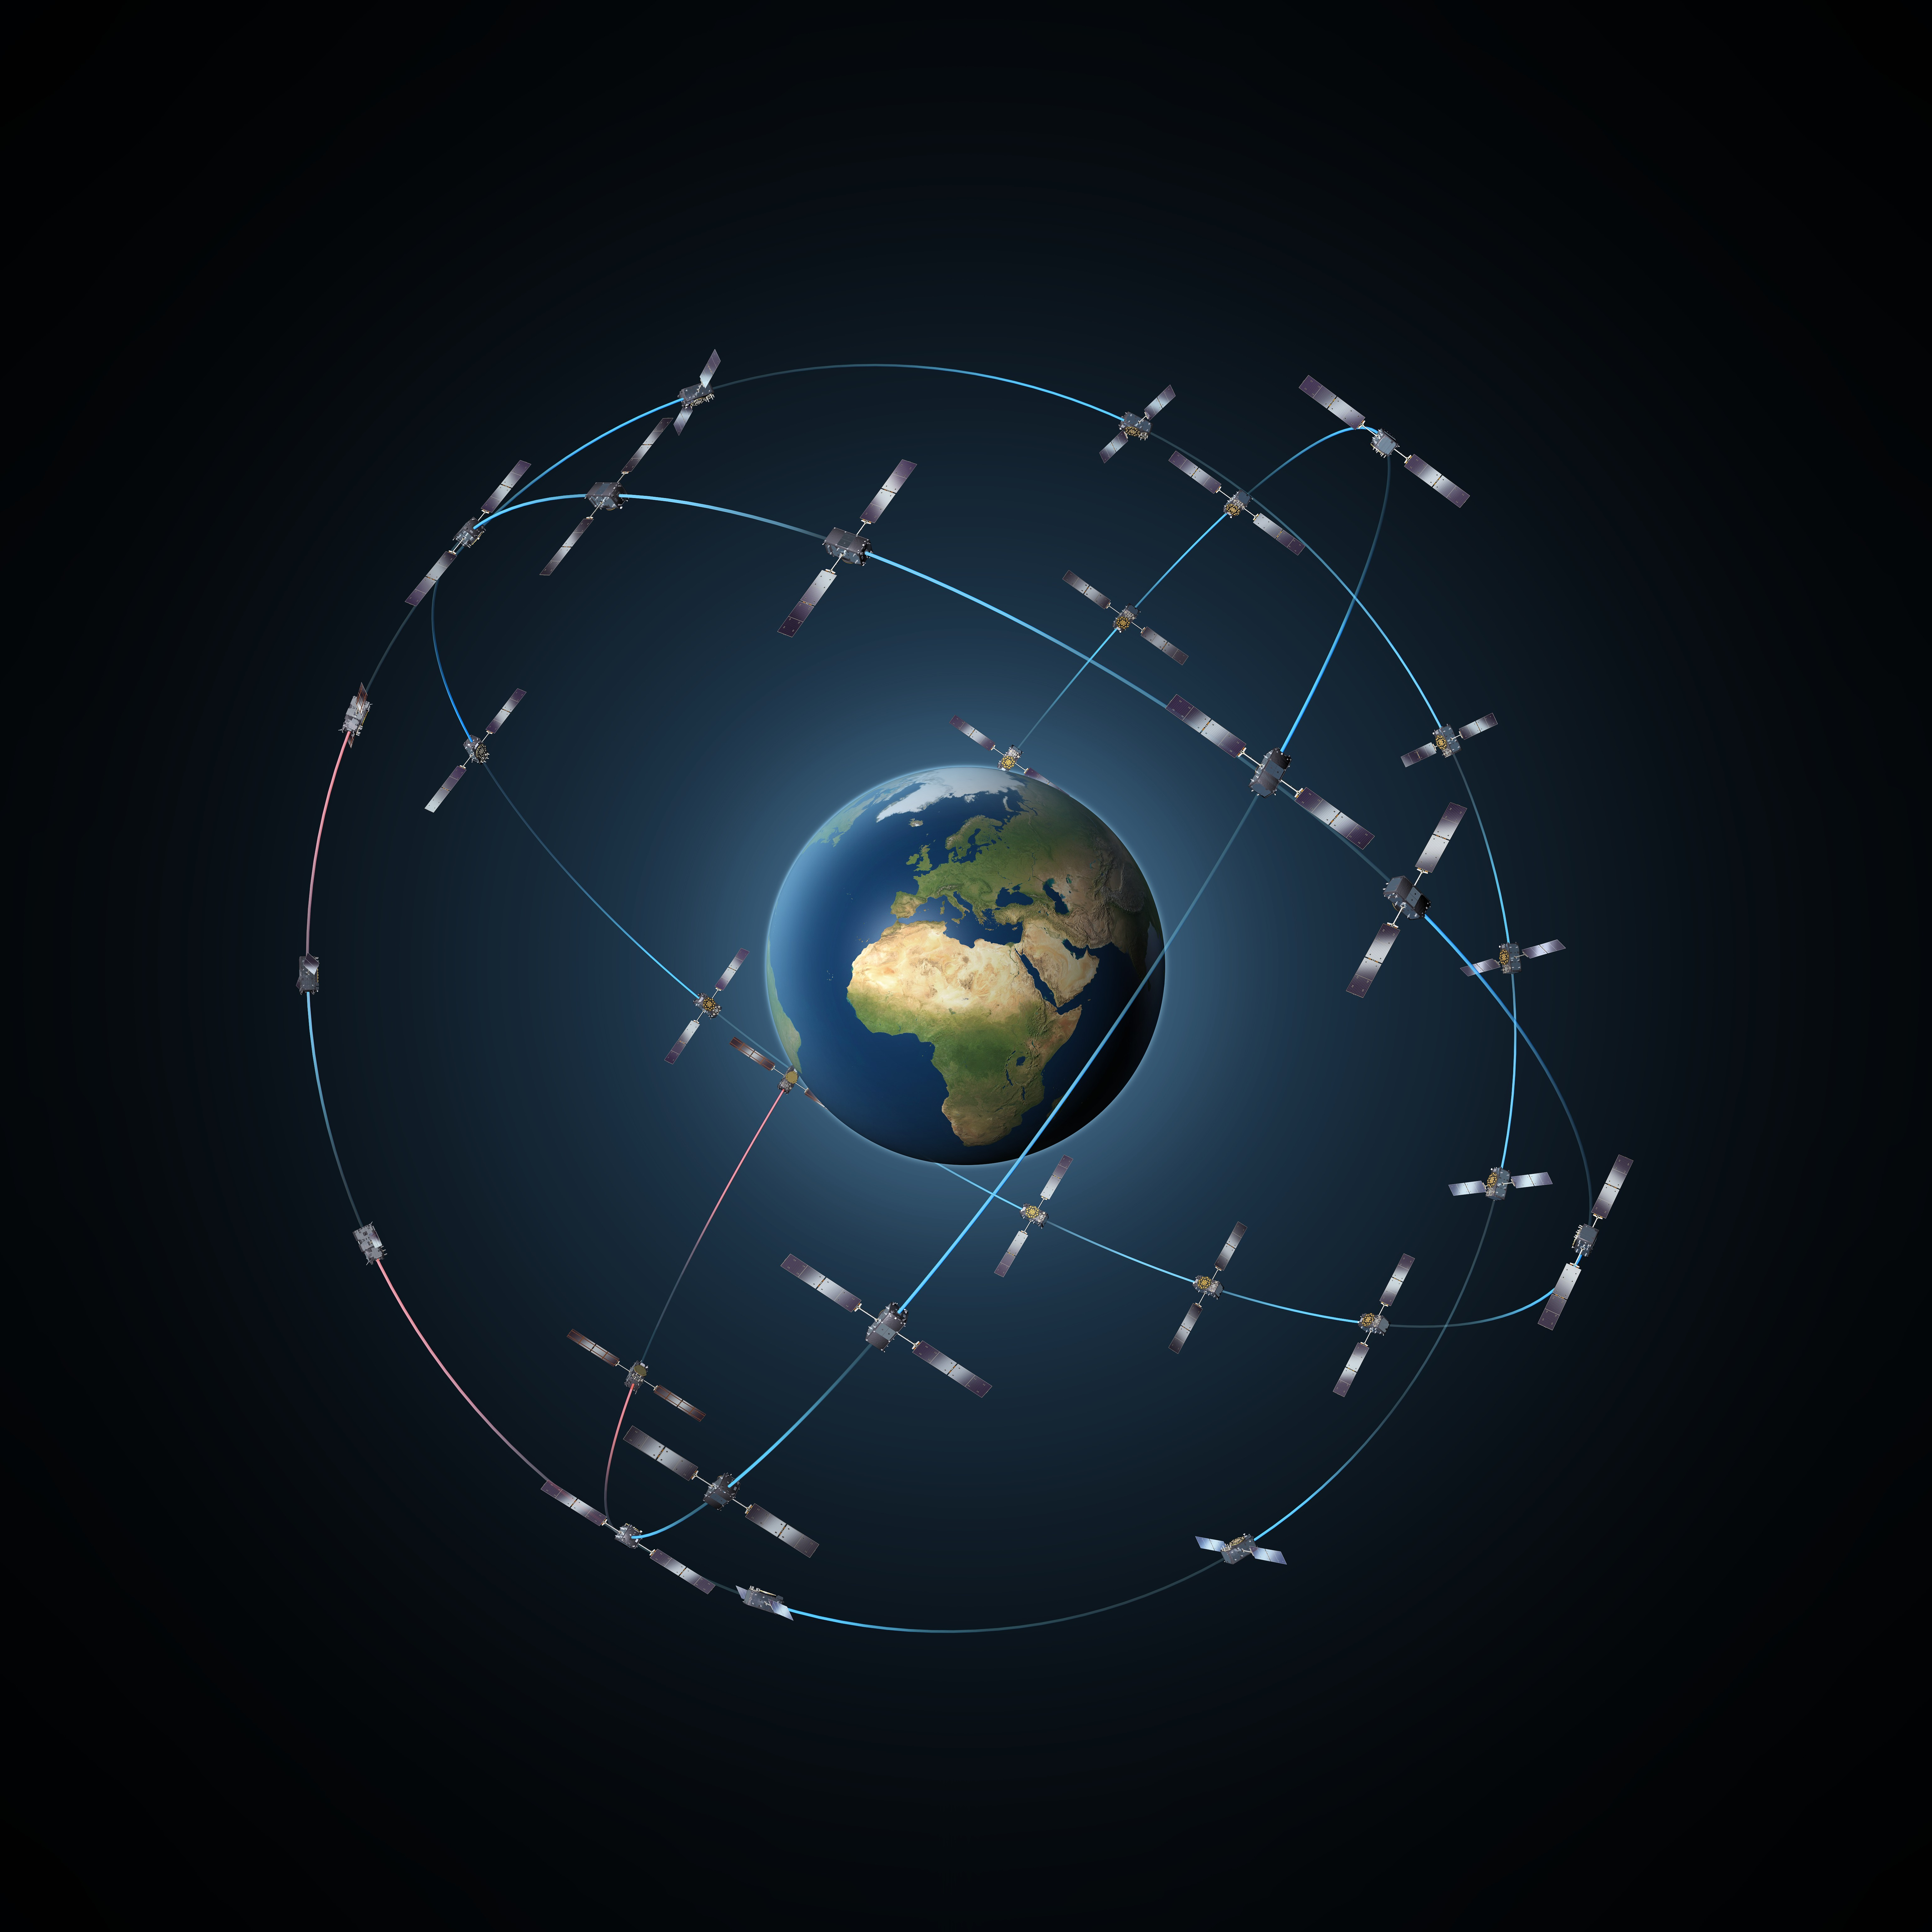 The complete Galileo constellation will consist of 24 satellites along three orbital planes, plus two spare satellites per orbit.